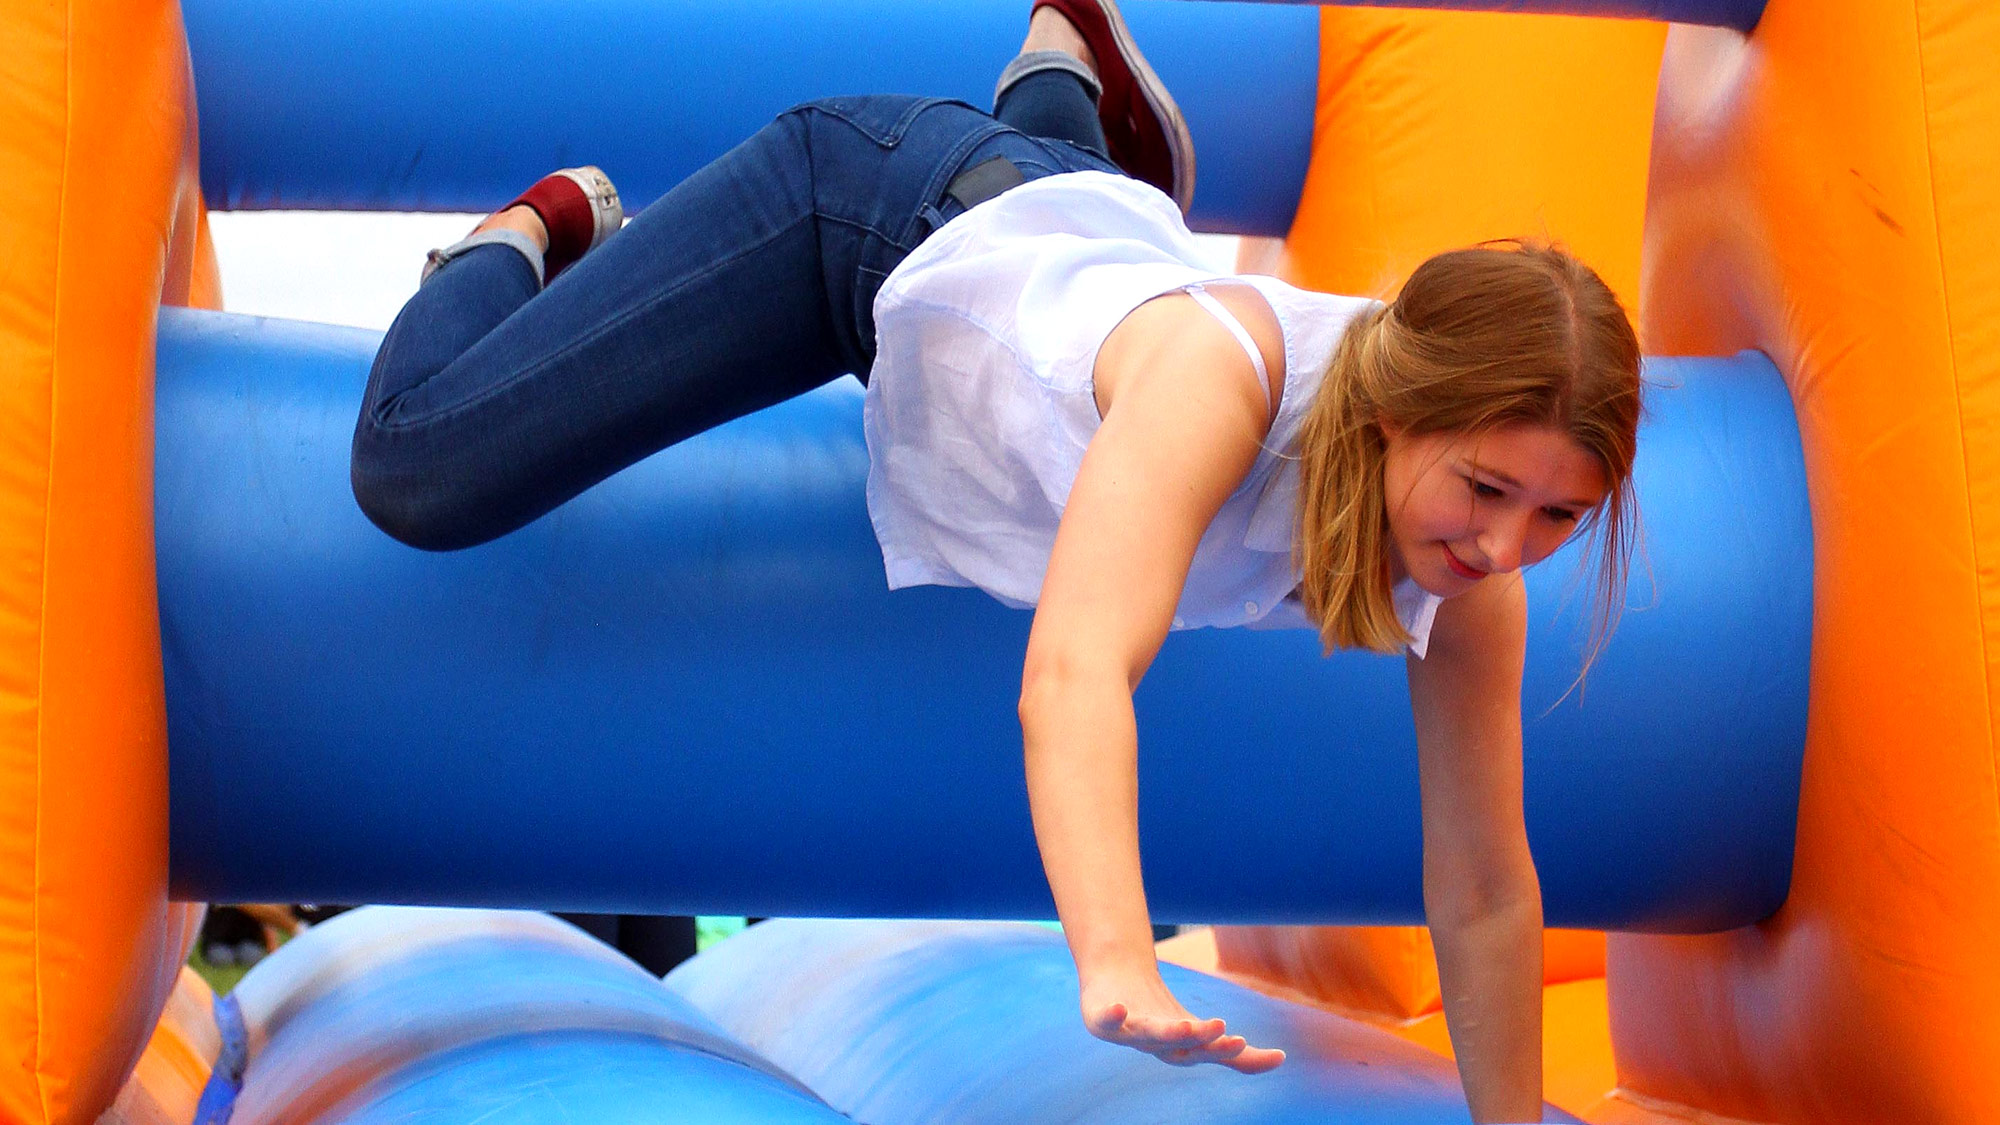 The Manic Mangles Inflatable It's A Knockout game